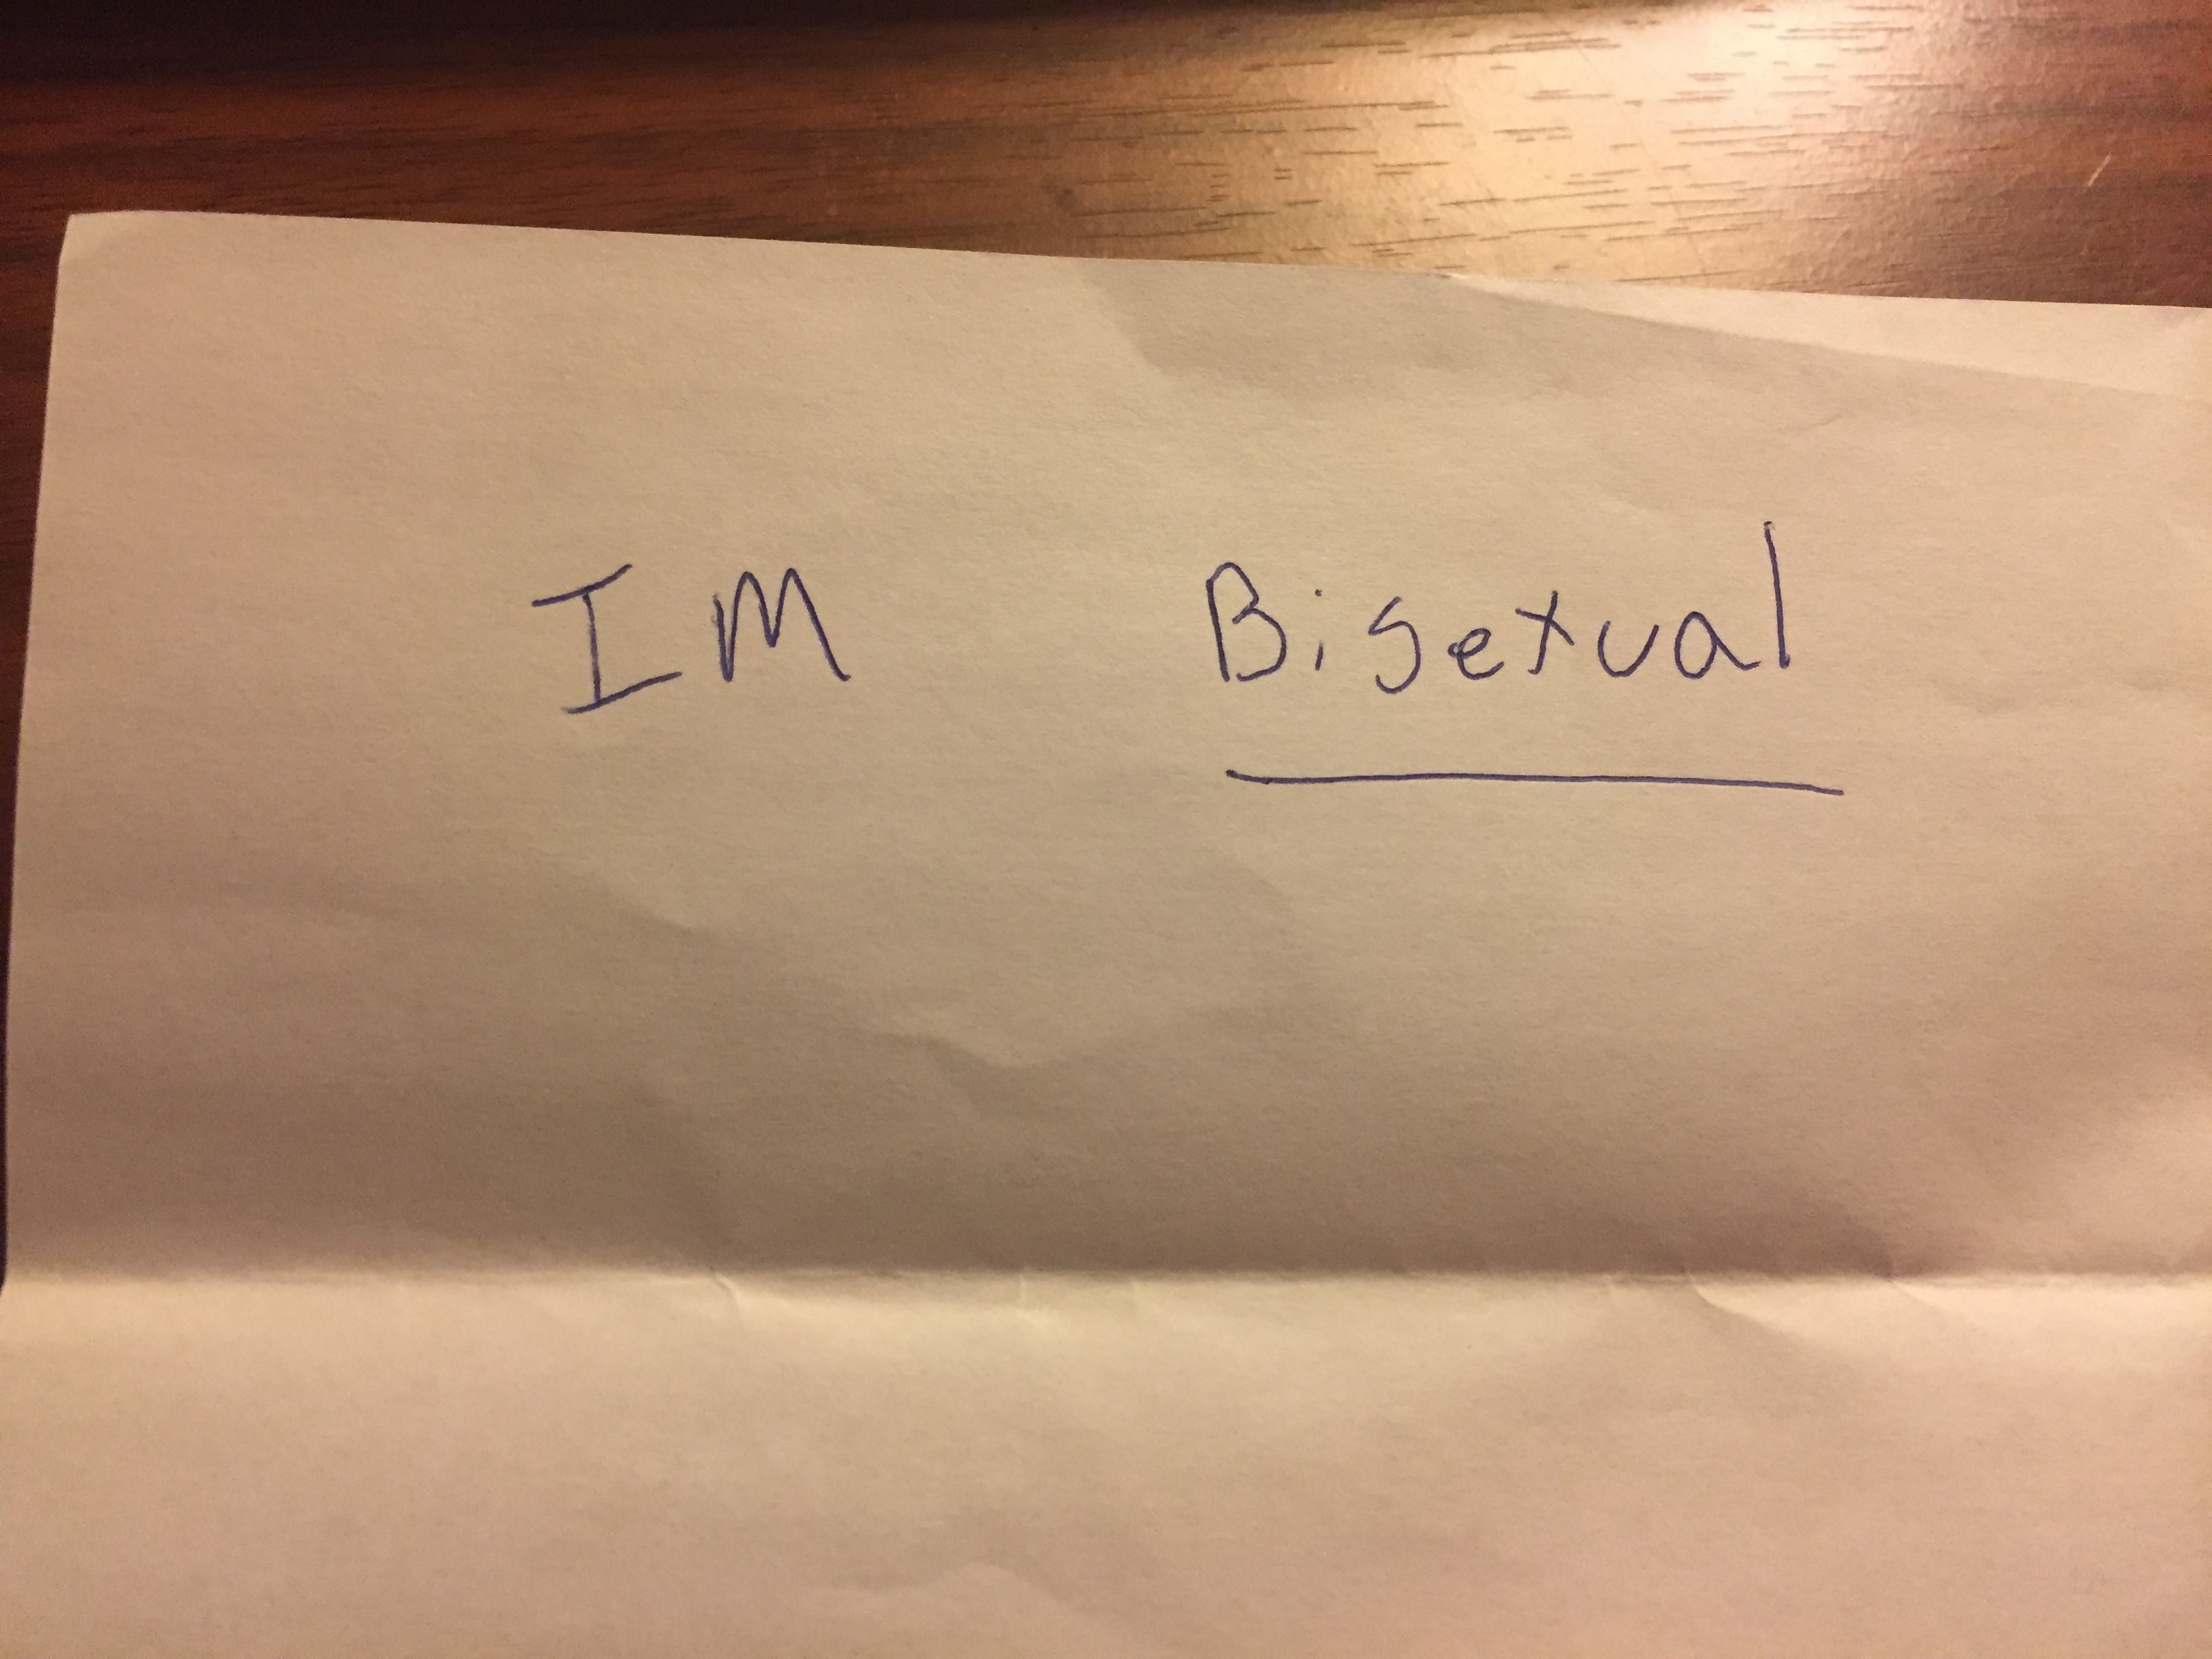 A copy of a daughter's 'coming out' note to her mom.